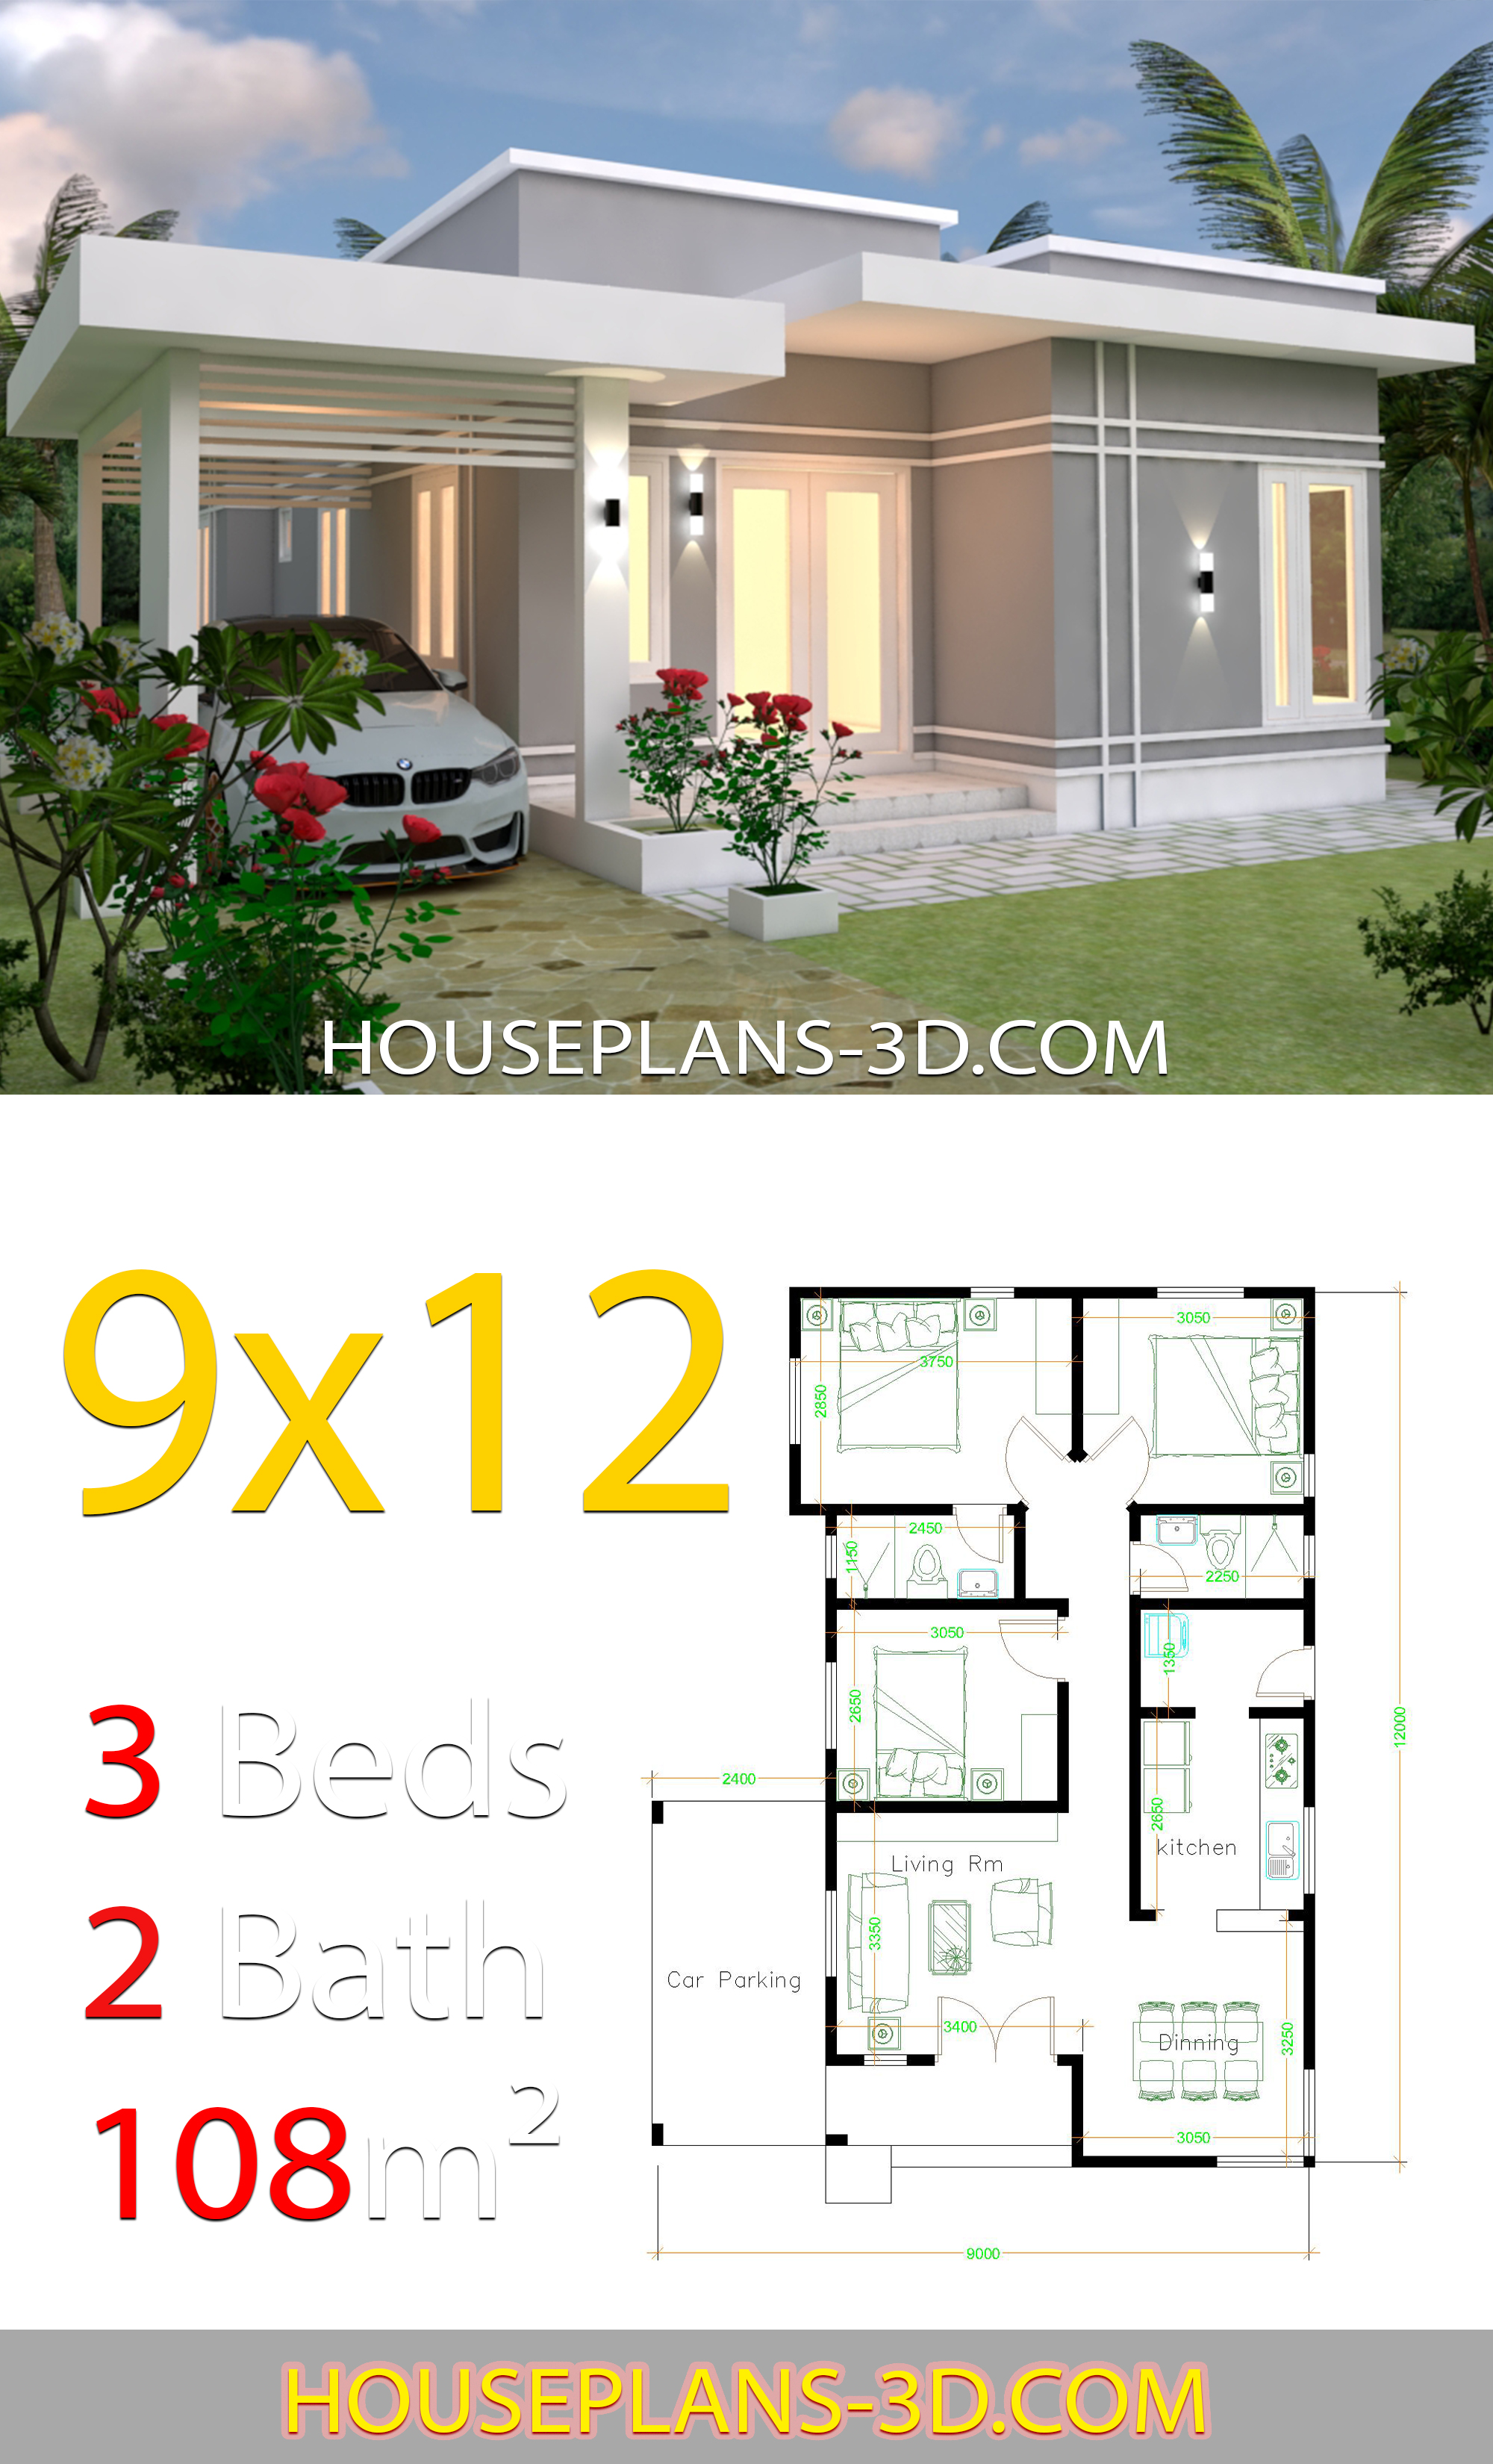 10 X 12 Bedroom Design: House Design Plans 9x12 With 3 Bedrooms Terrace Roof